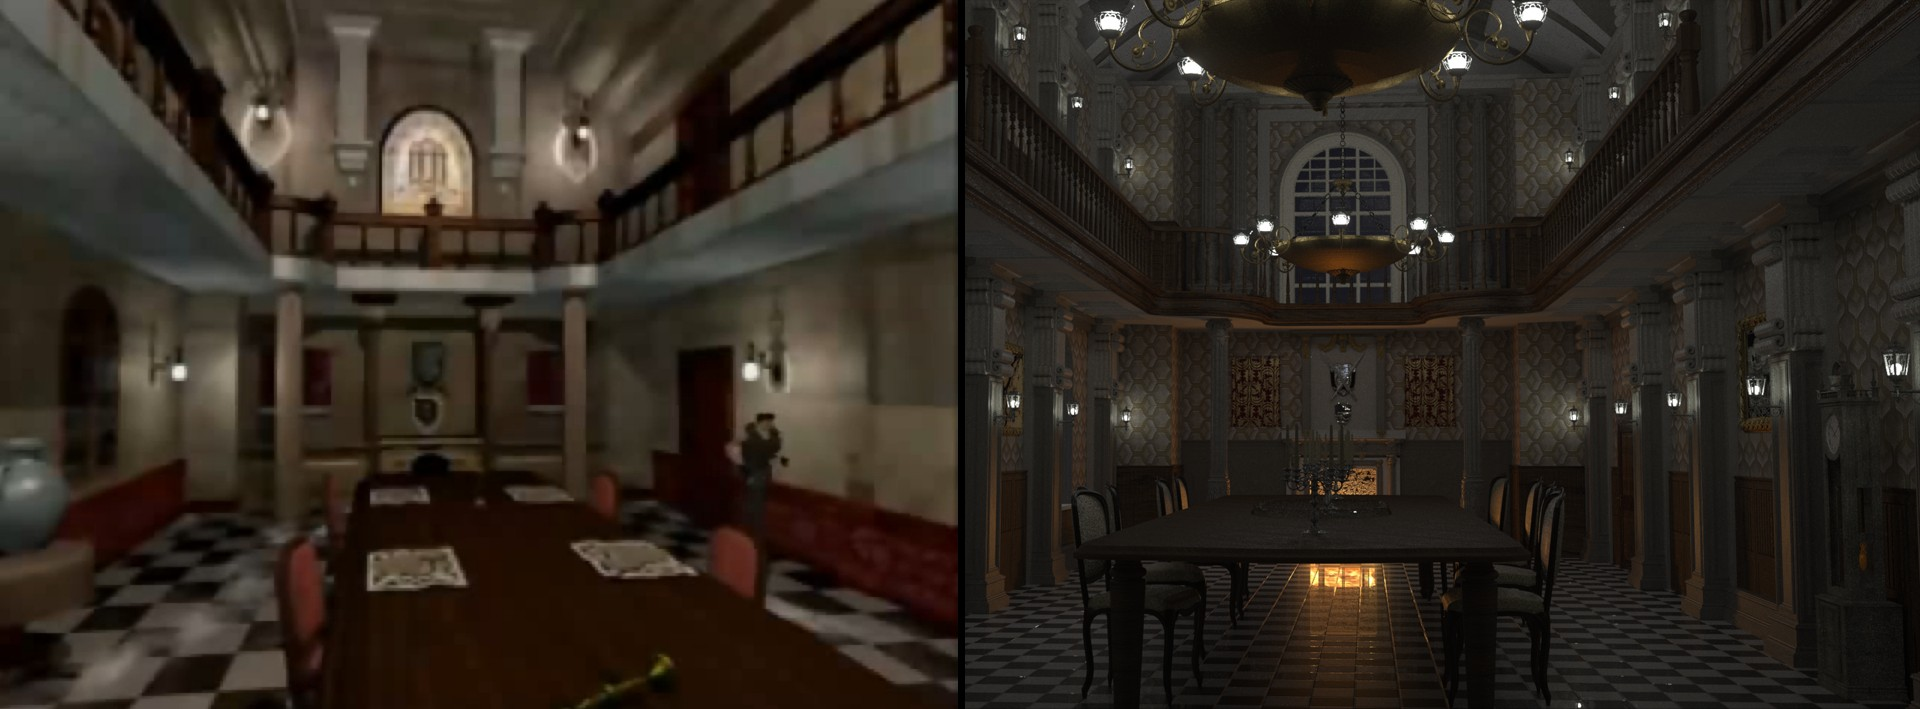 resident evil dining hall comparison architectural visualisation